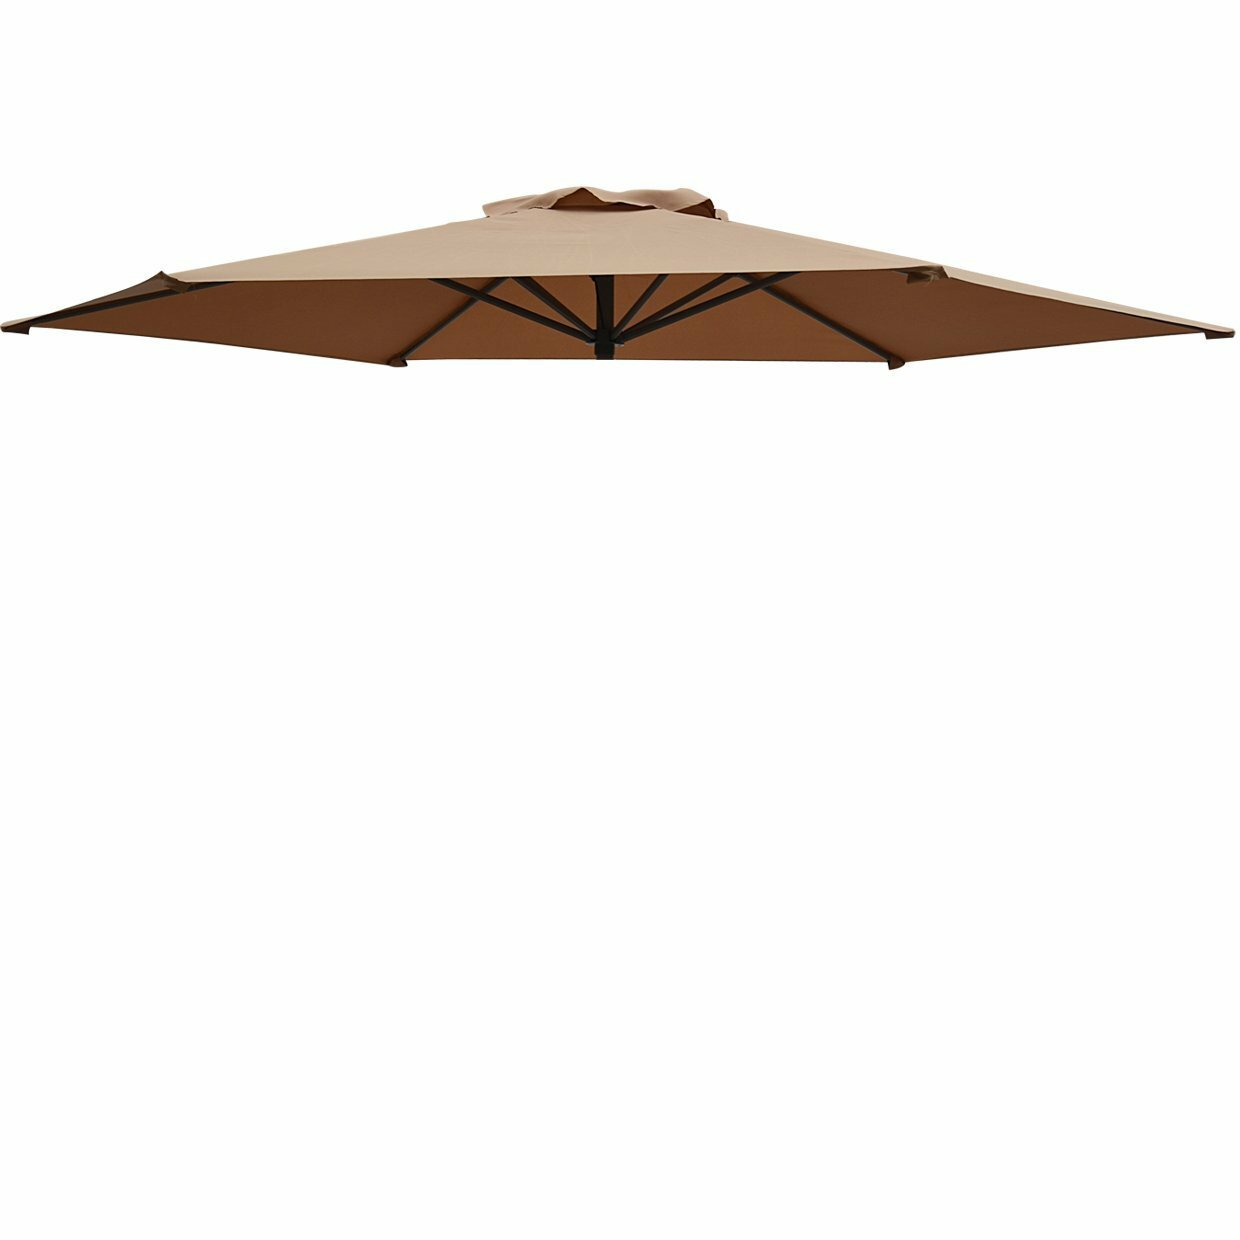 Tayler Patio Umbrella Replacement Cover